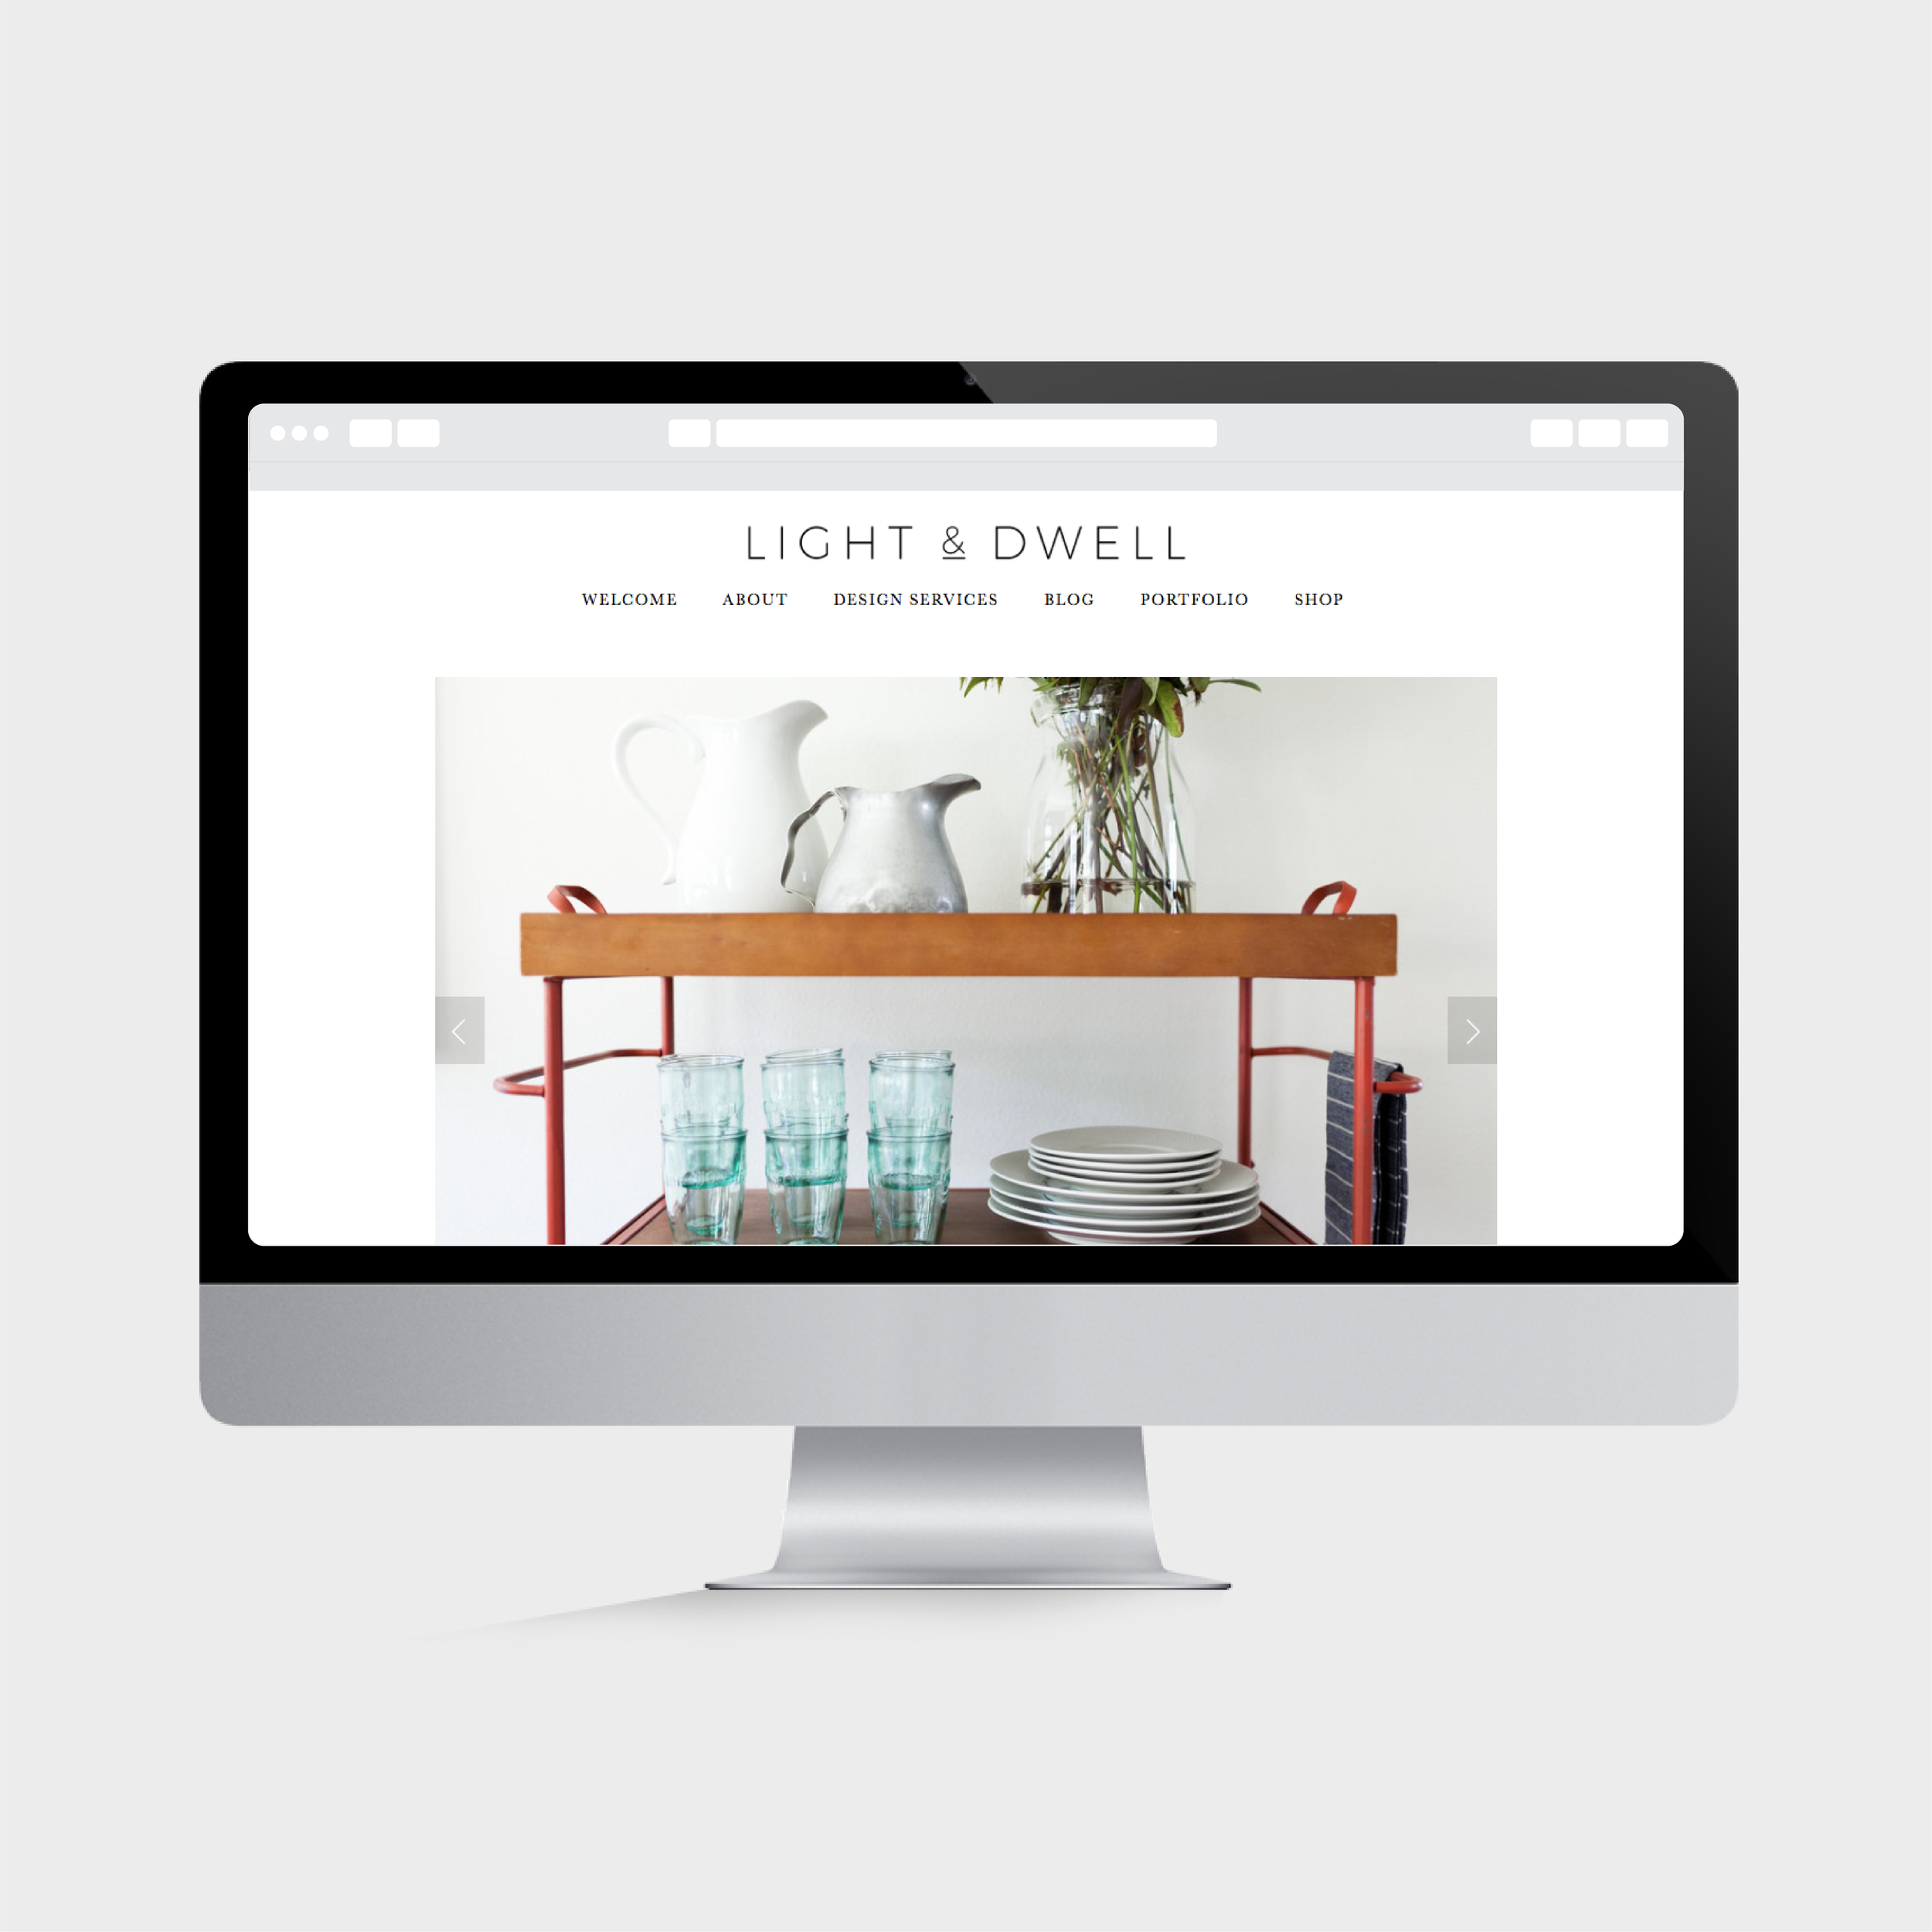 website homepage with logo & photos